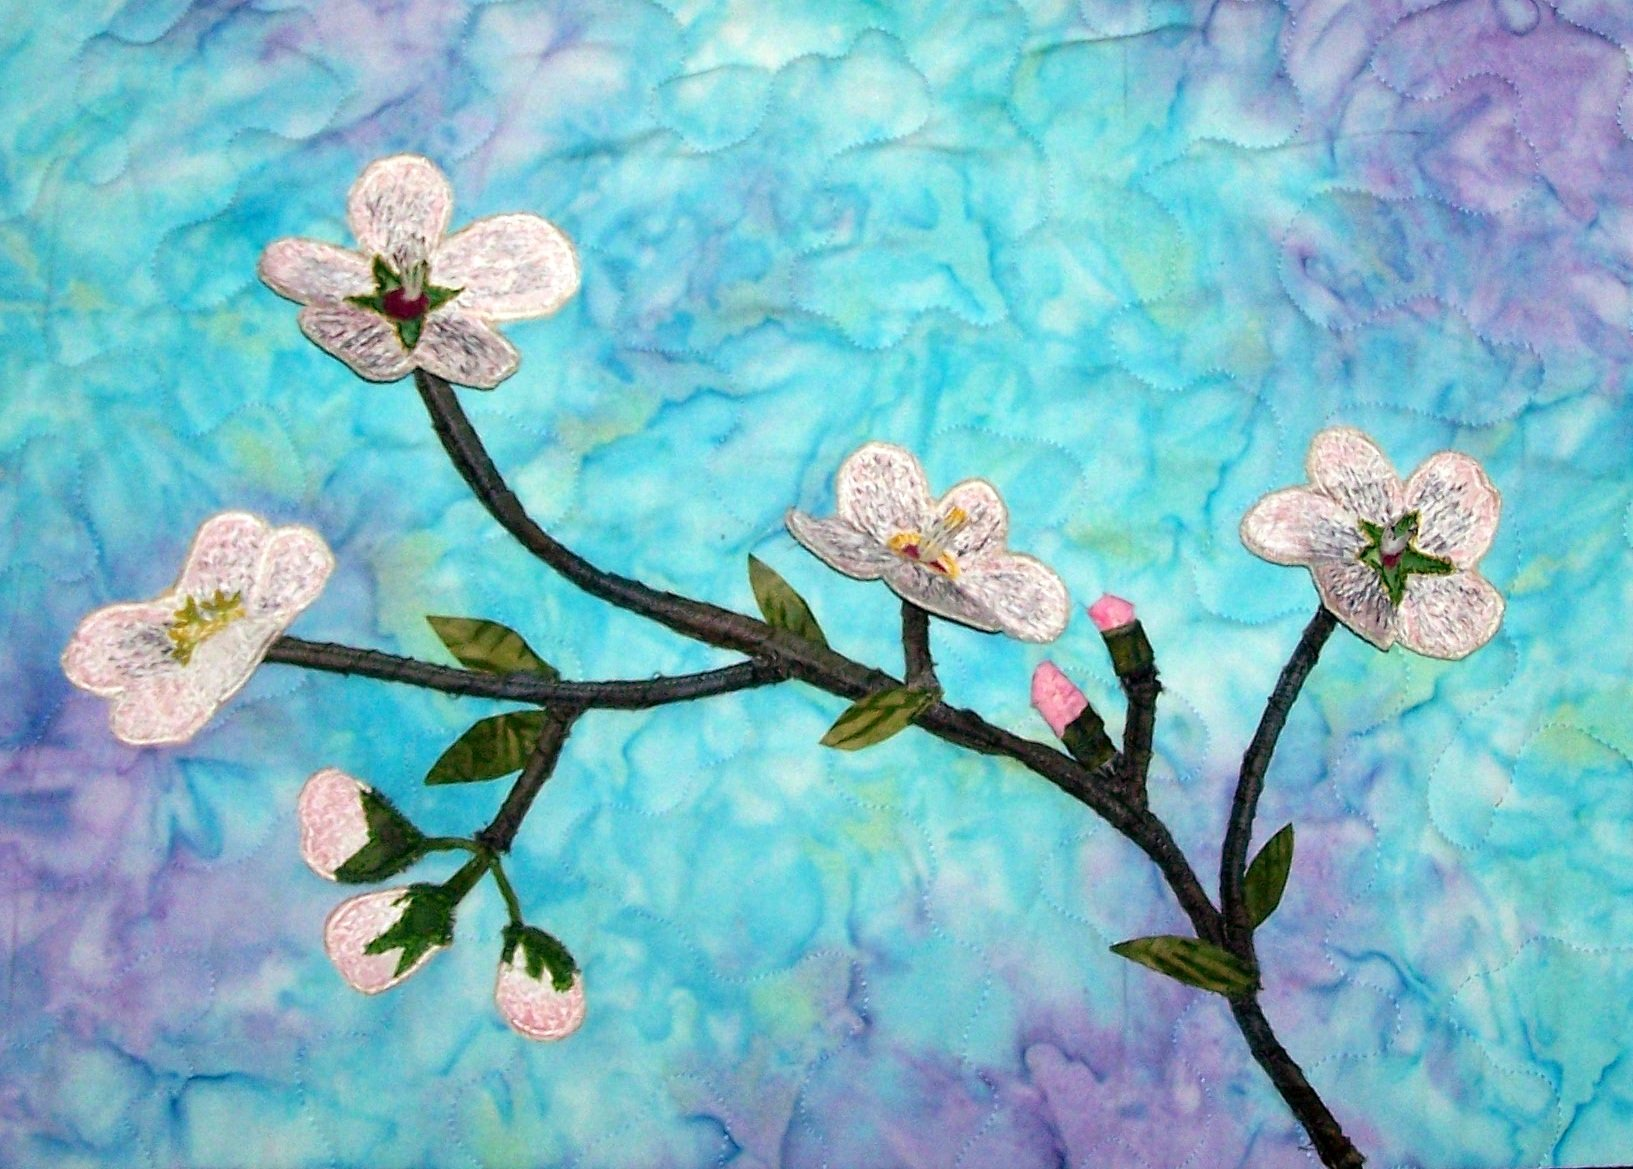 CHERRY BLOSSOMS STITCHED PHOTO ART CARD